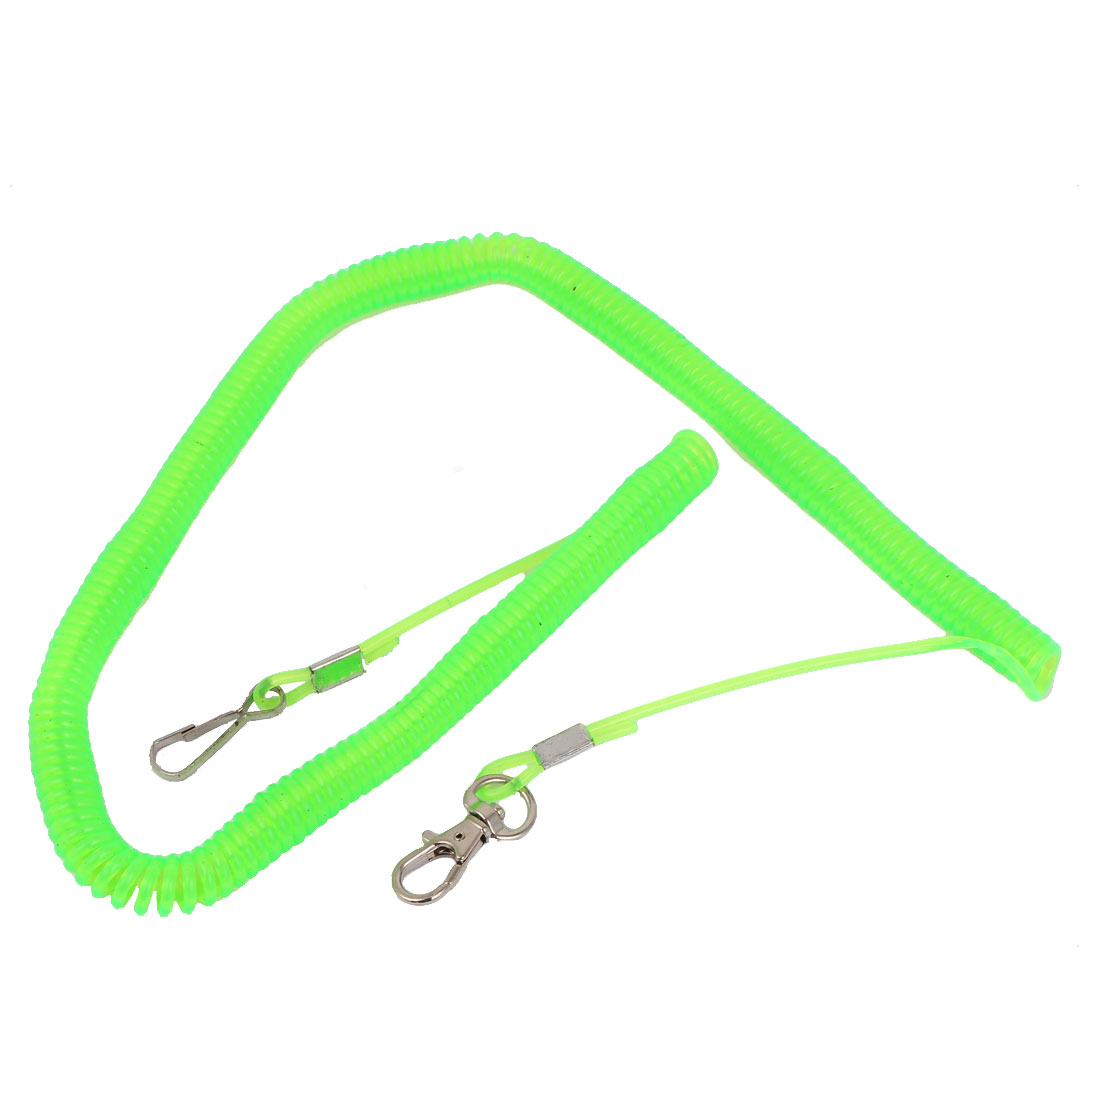 5Meters Lime Green Plastic Contractility Elastic Coiled Fishing Rope Cable